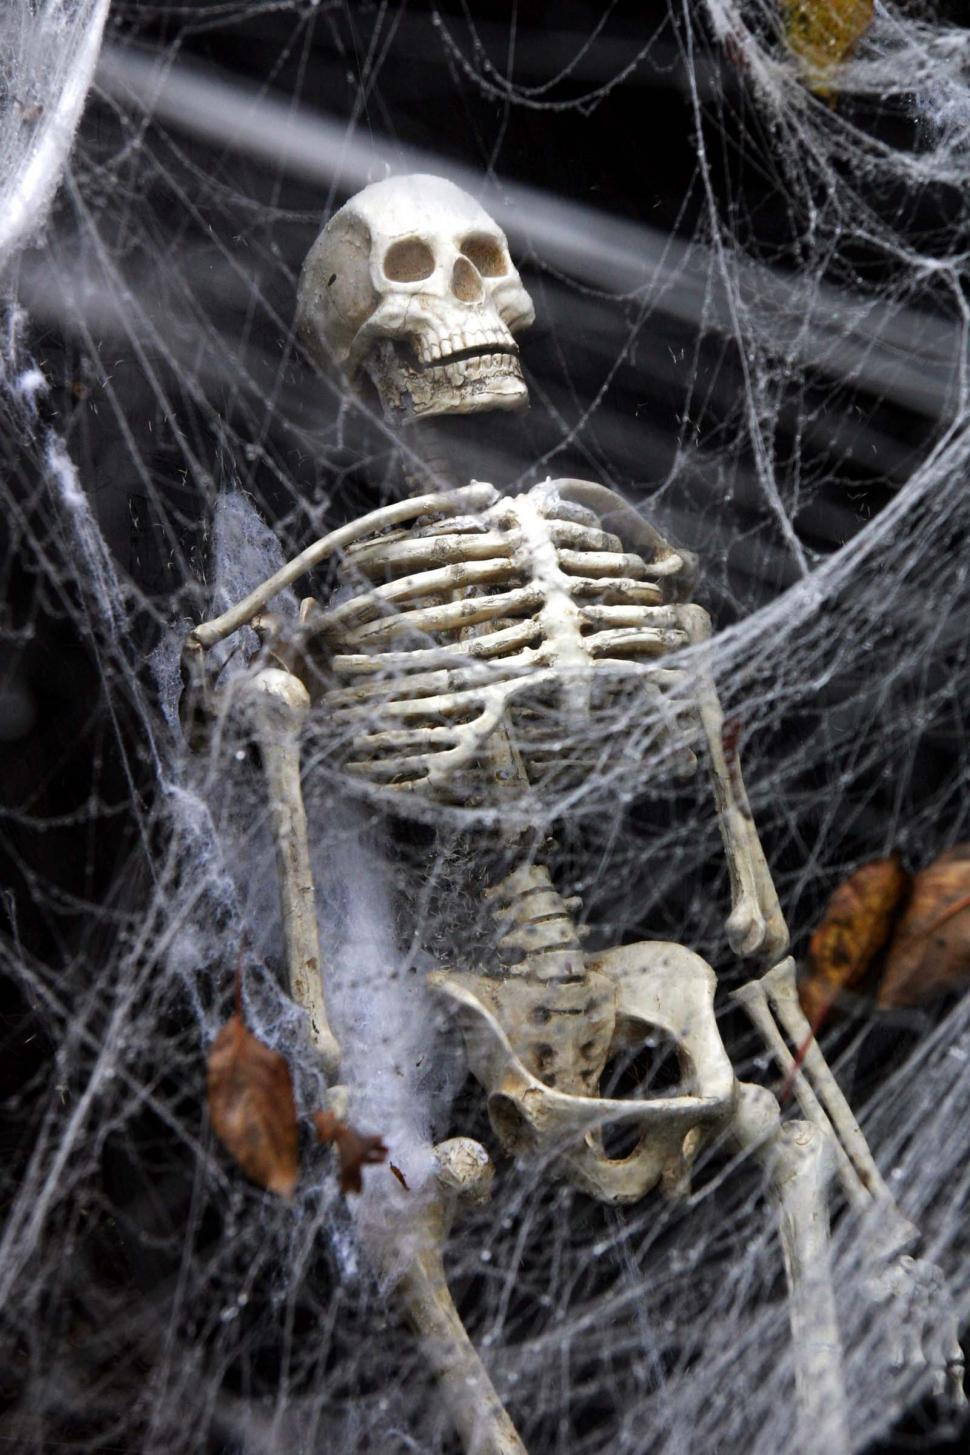 Download Free Stock Photo of halloween scary frightening spooky ghoule skeleton decoration haunted skull web spider evil scare coffin bones human casket